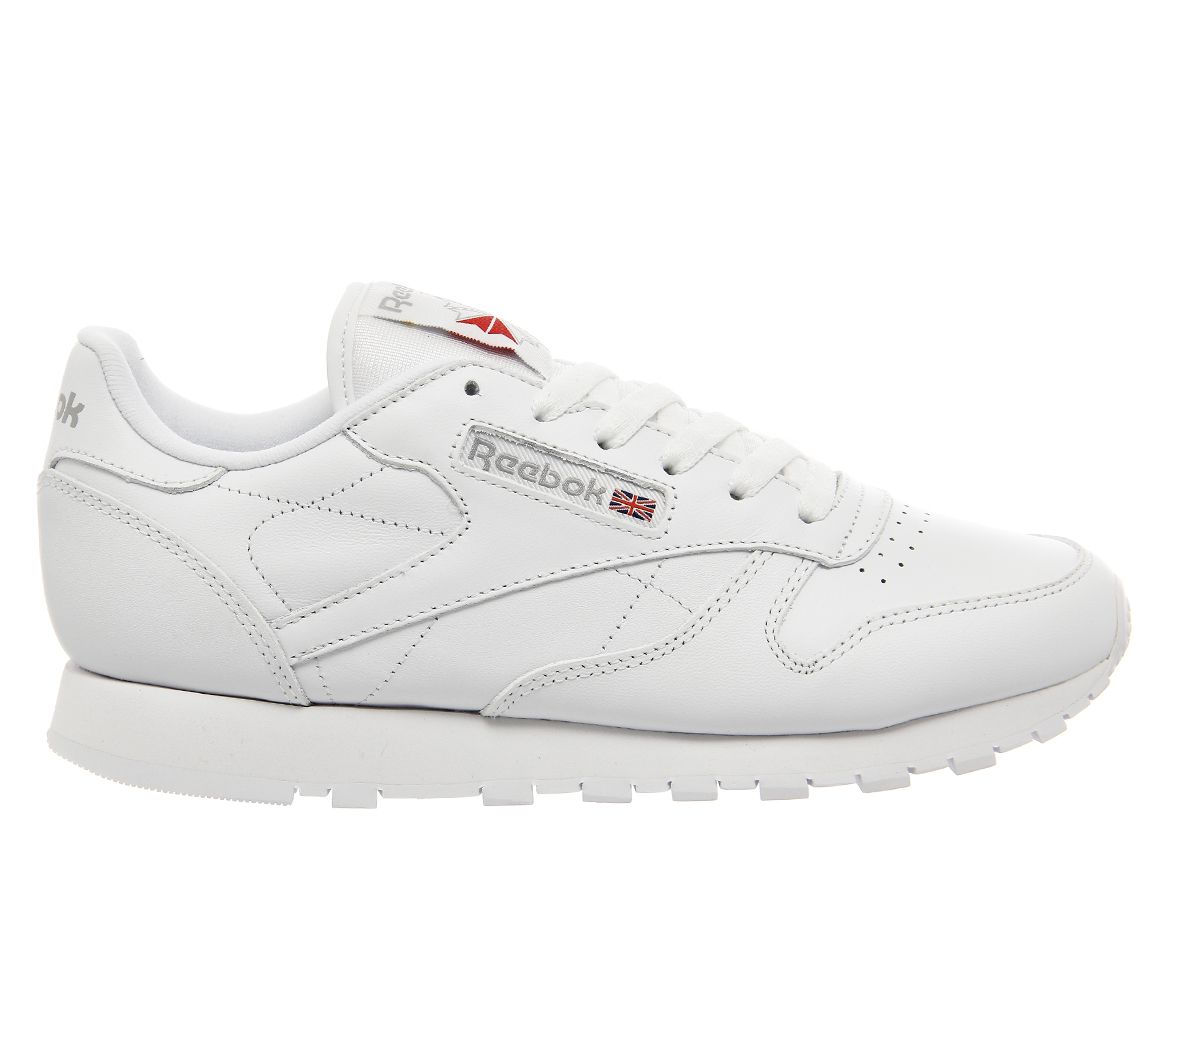 d80a47d48aa46 Womens-Reebok-Classic-Leather-Trainers-White-Leather thumbnail 15